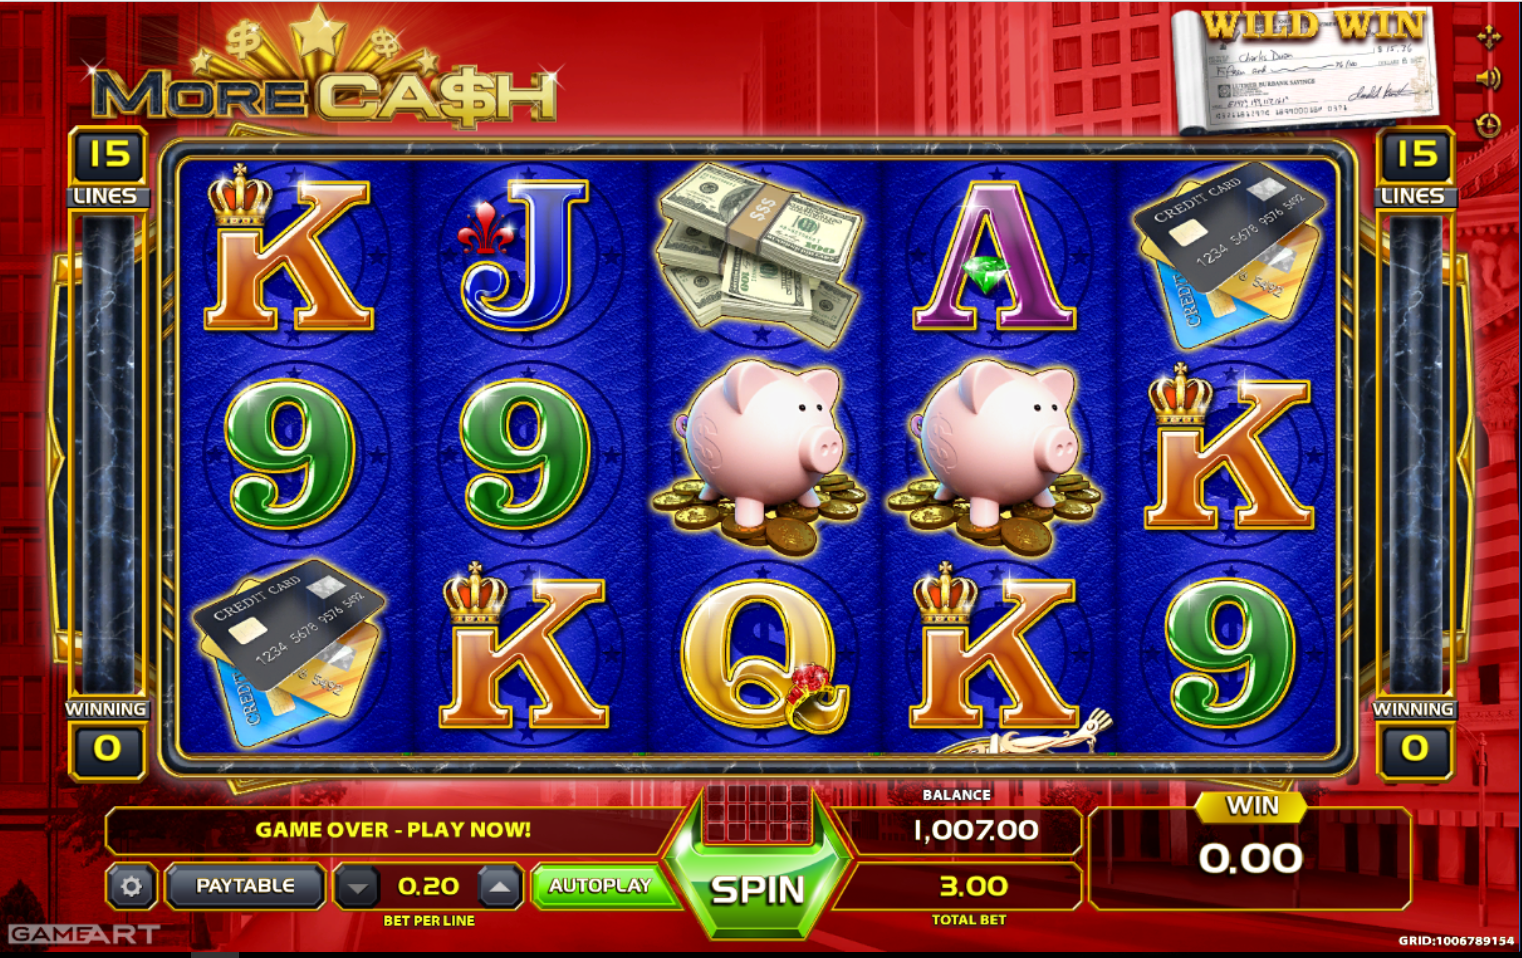 More Cash slot